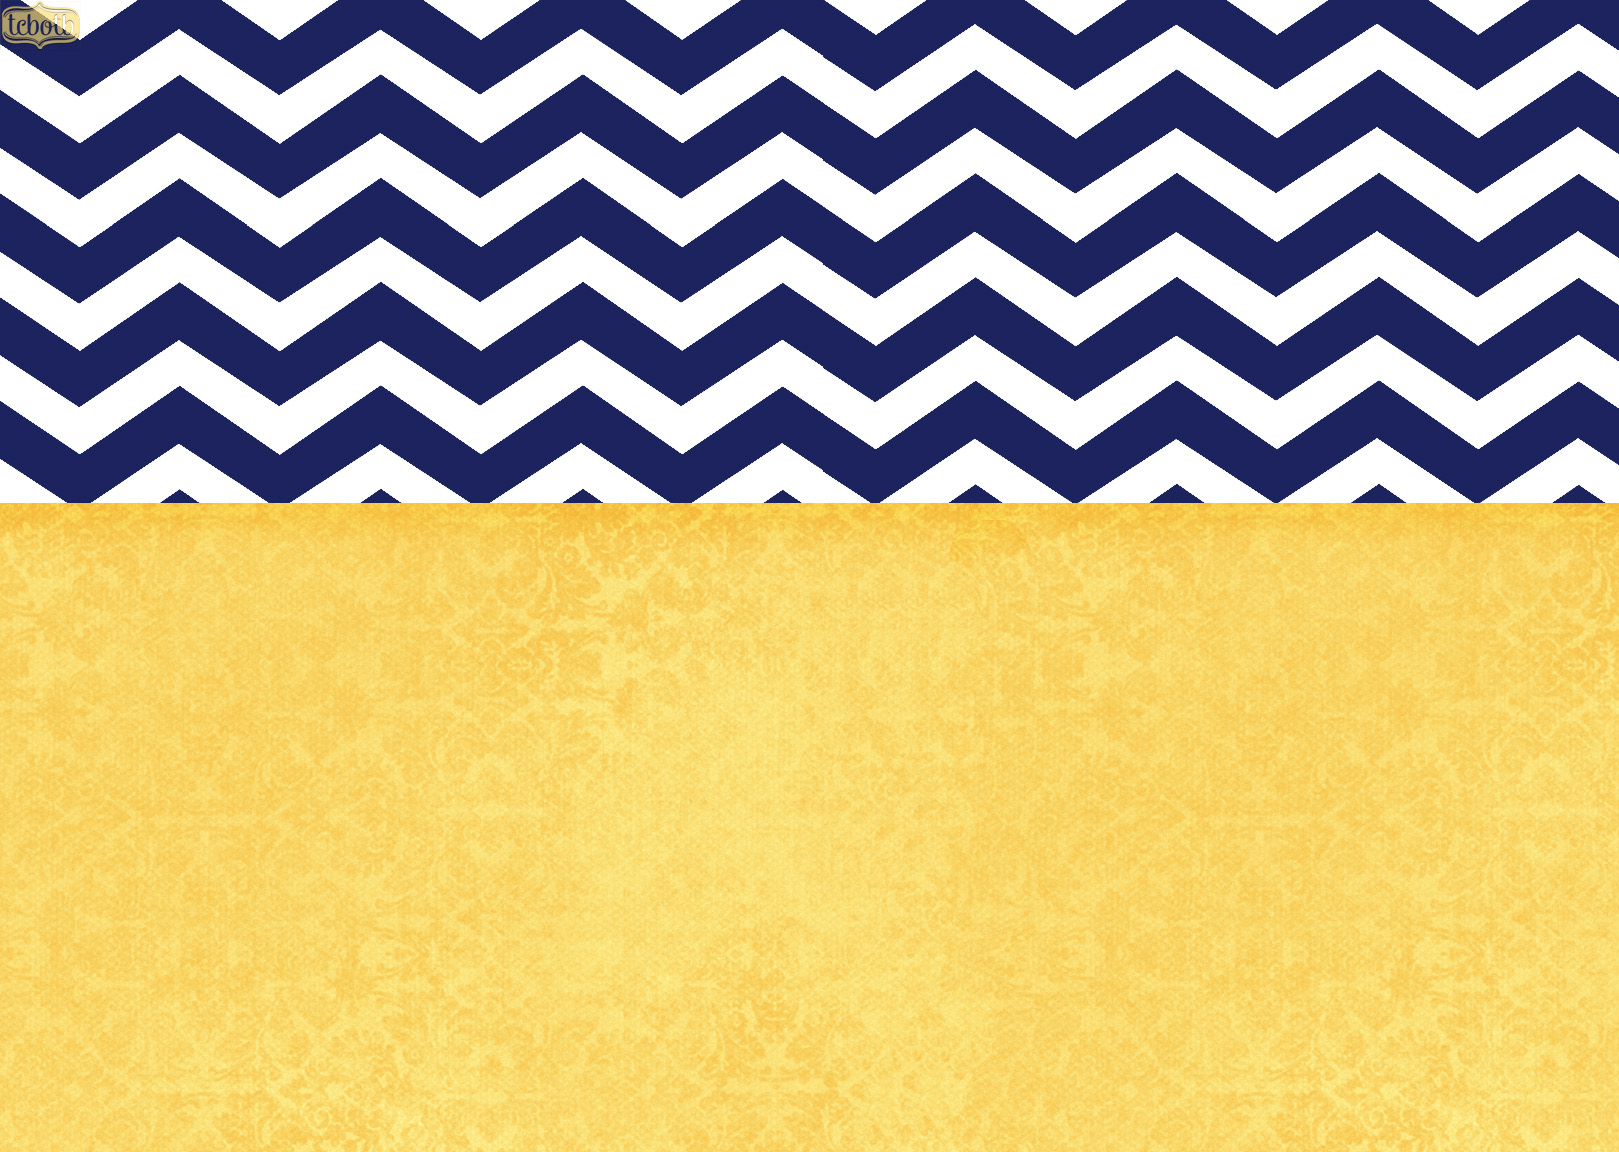 Download image Cute Chevron Backgrounds For Twitter PC Android 1619x1152